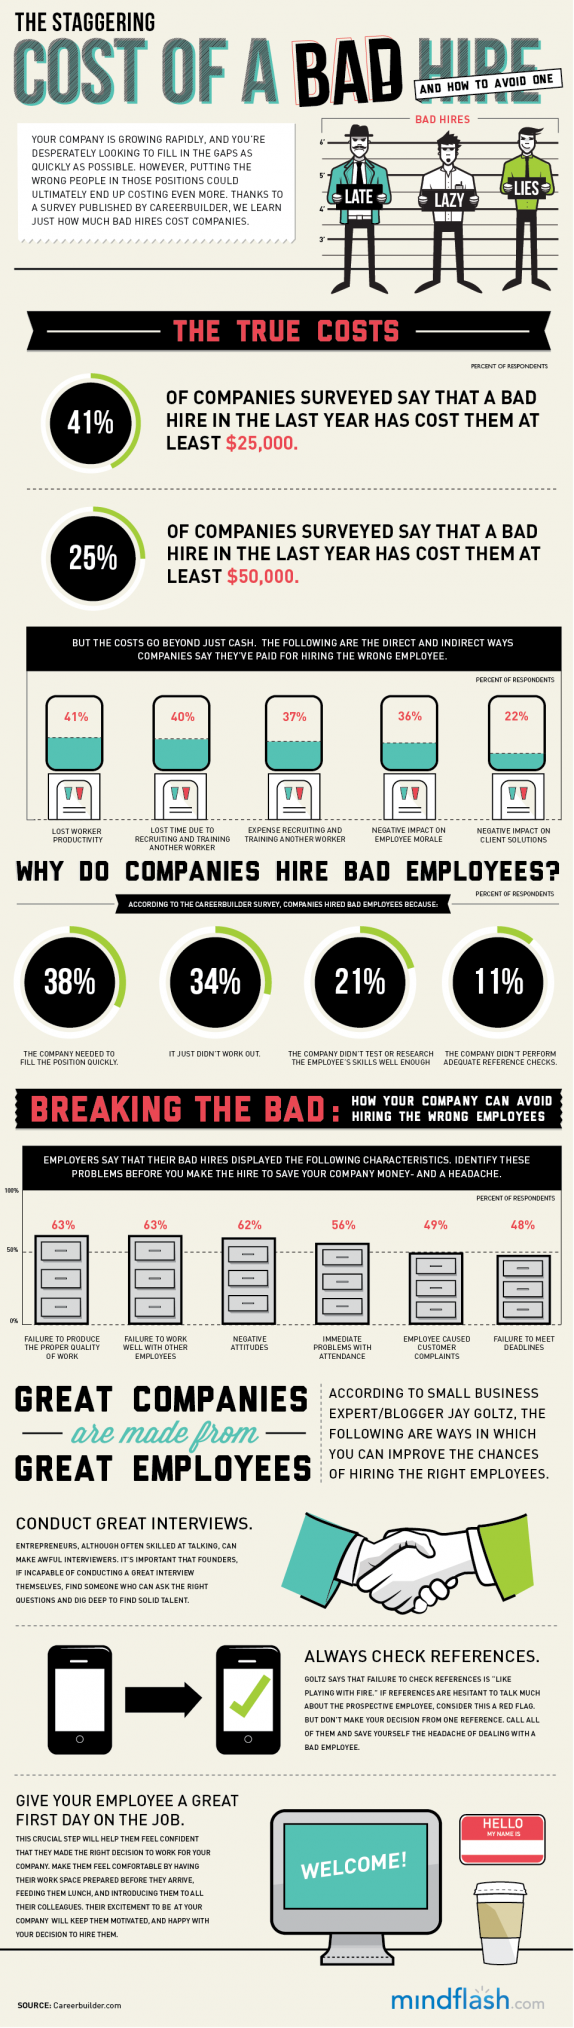 The Staggering Cost of a Bad Hire